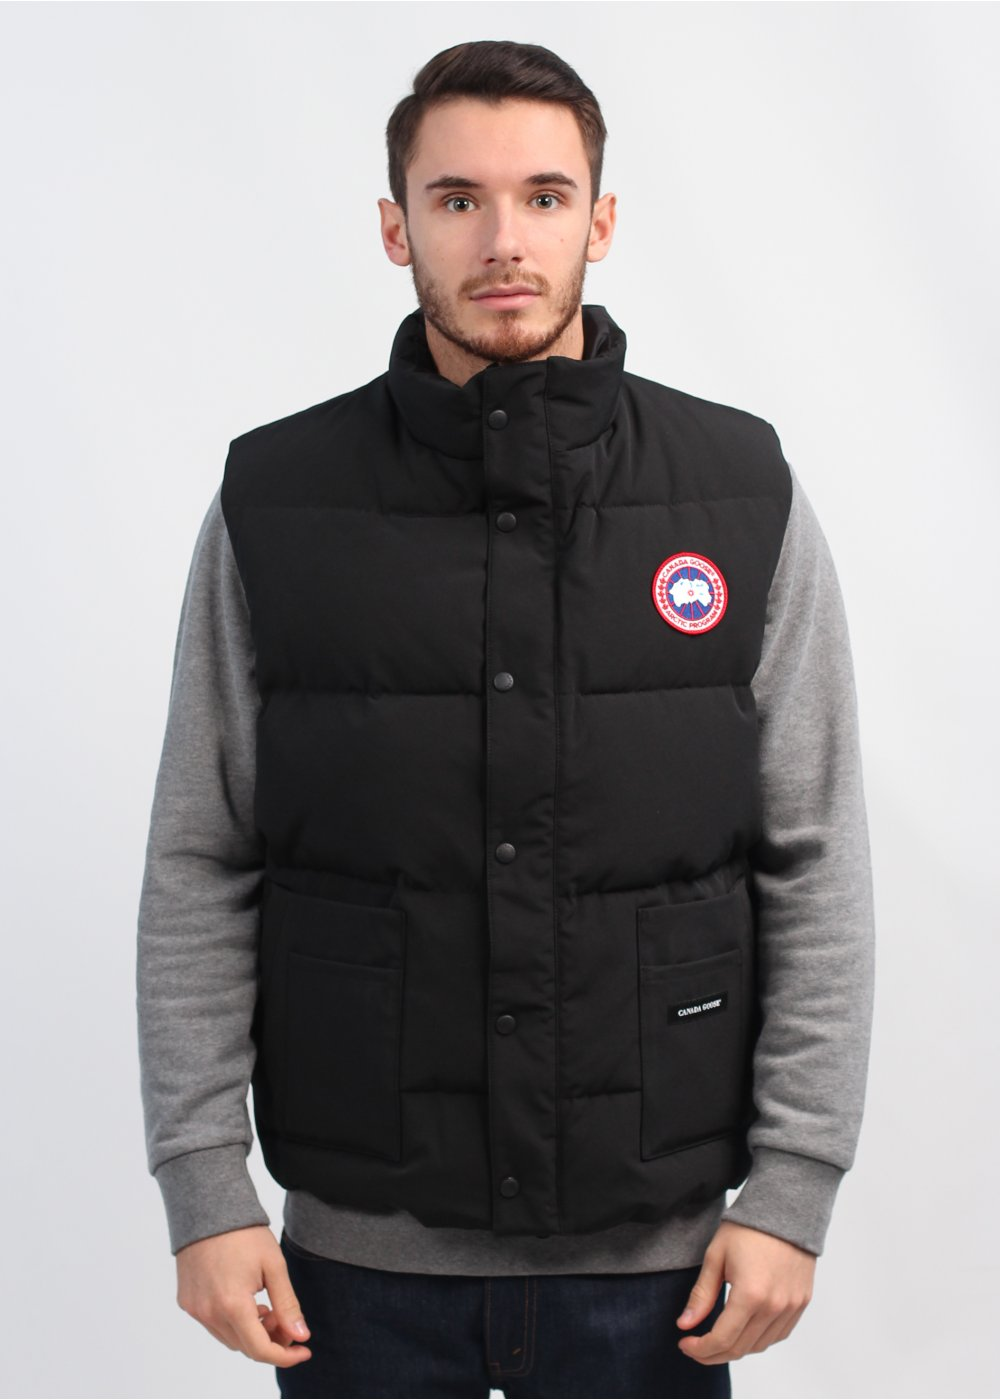 Canada Goose womens outlet store - New Style Arrival Canada Goose Chilliwack Forest Green Discount ...